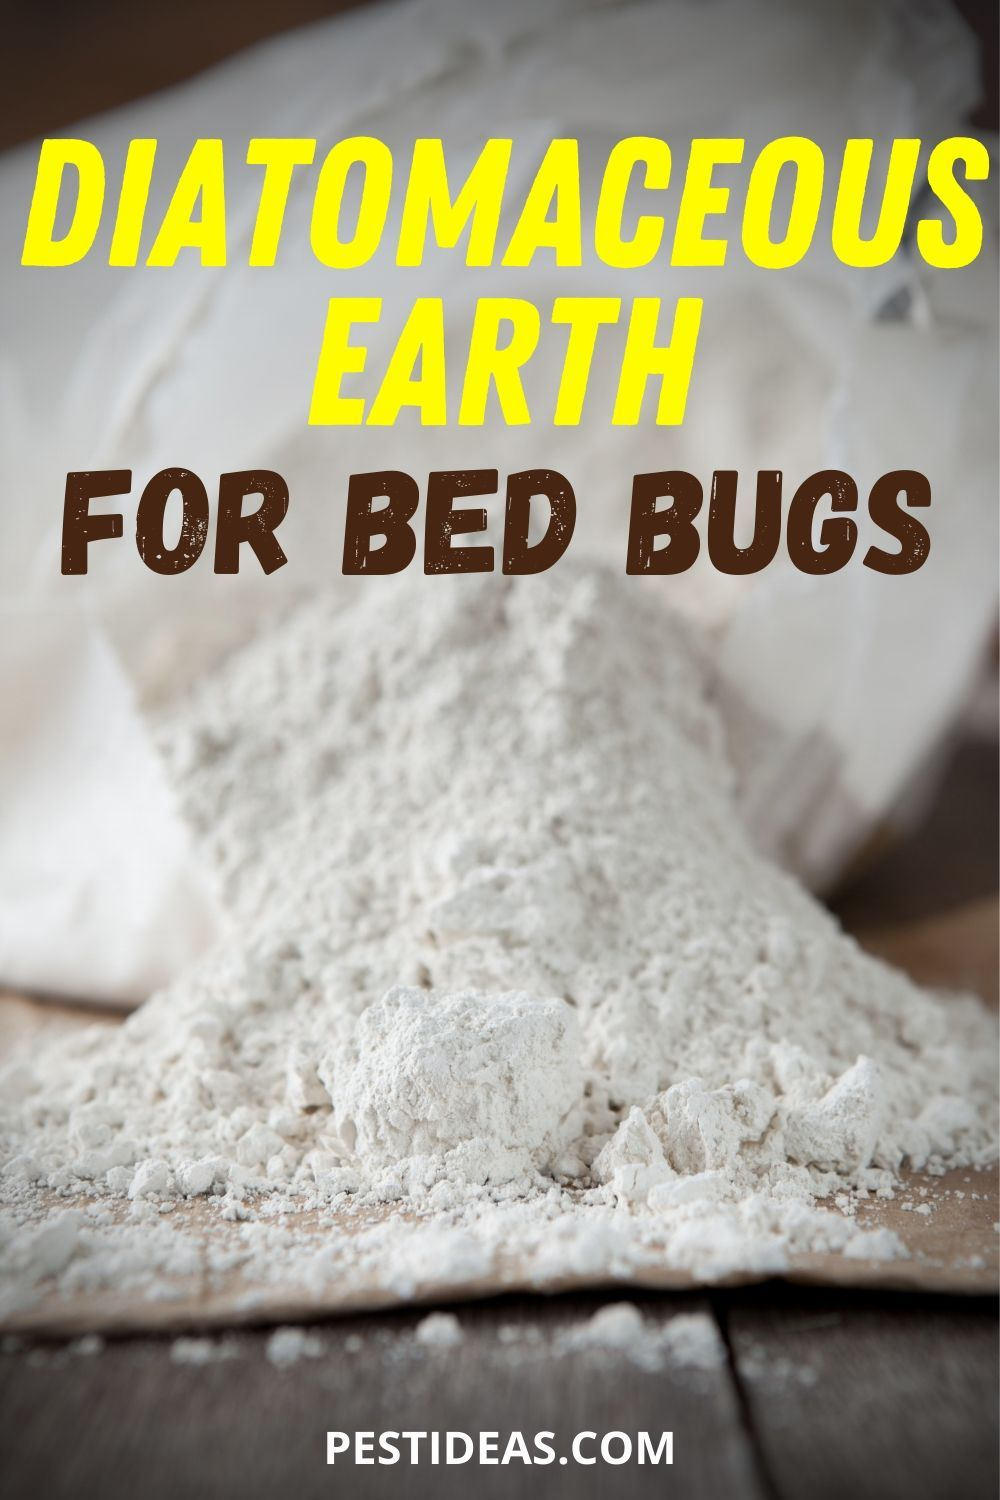 Diatomaceous Earth for Bed Bugs in 2020 Bed bugs, Bed